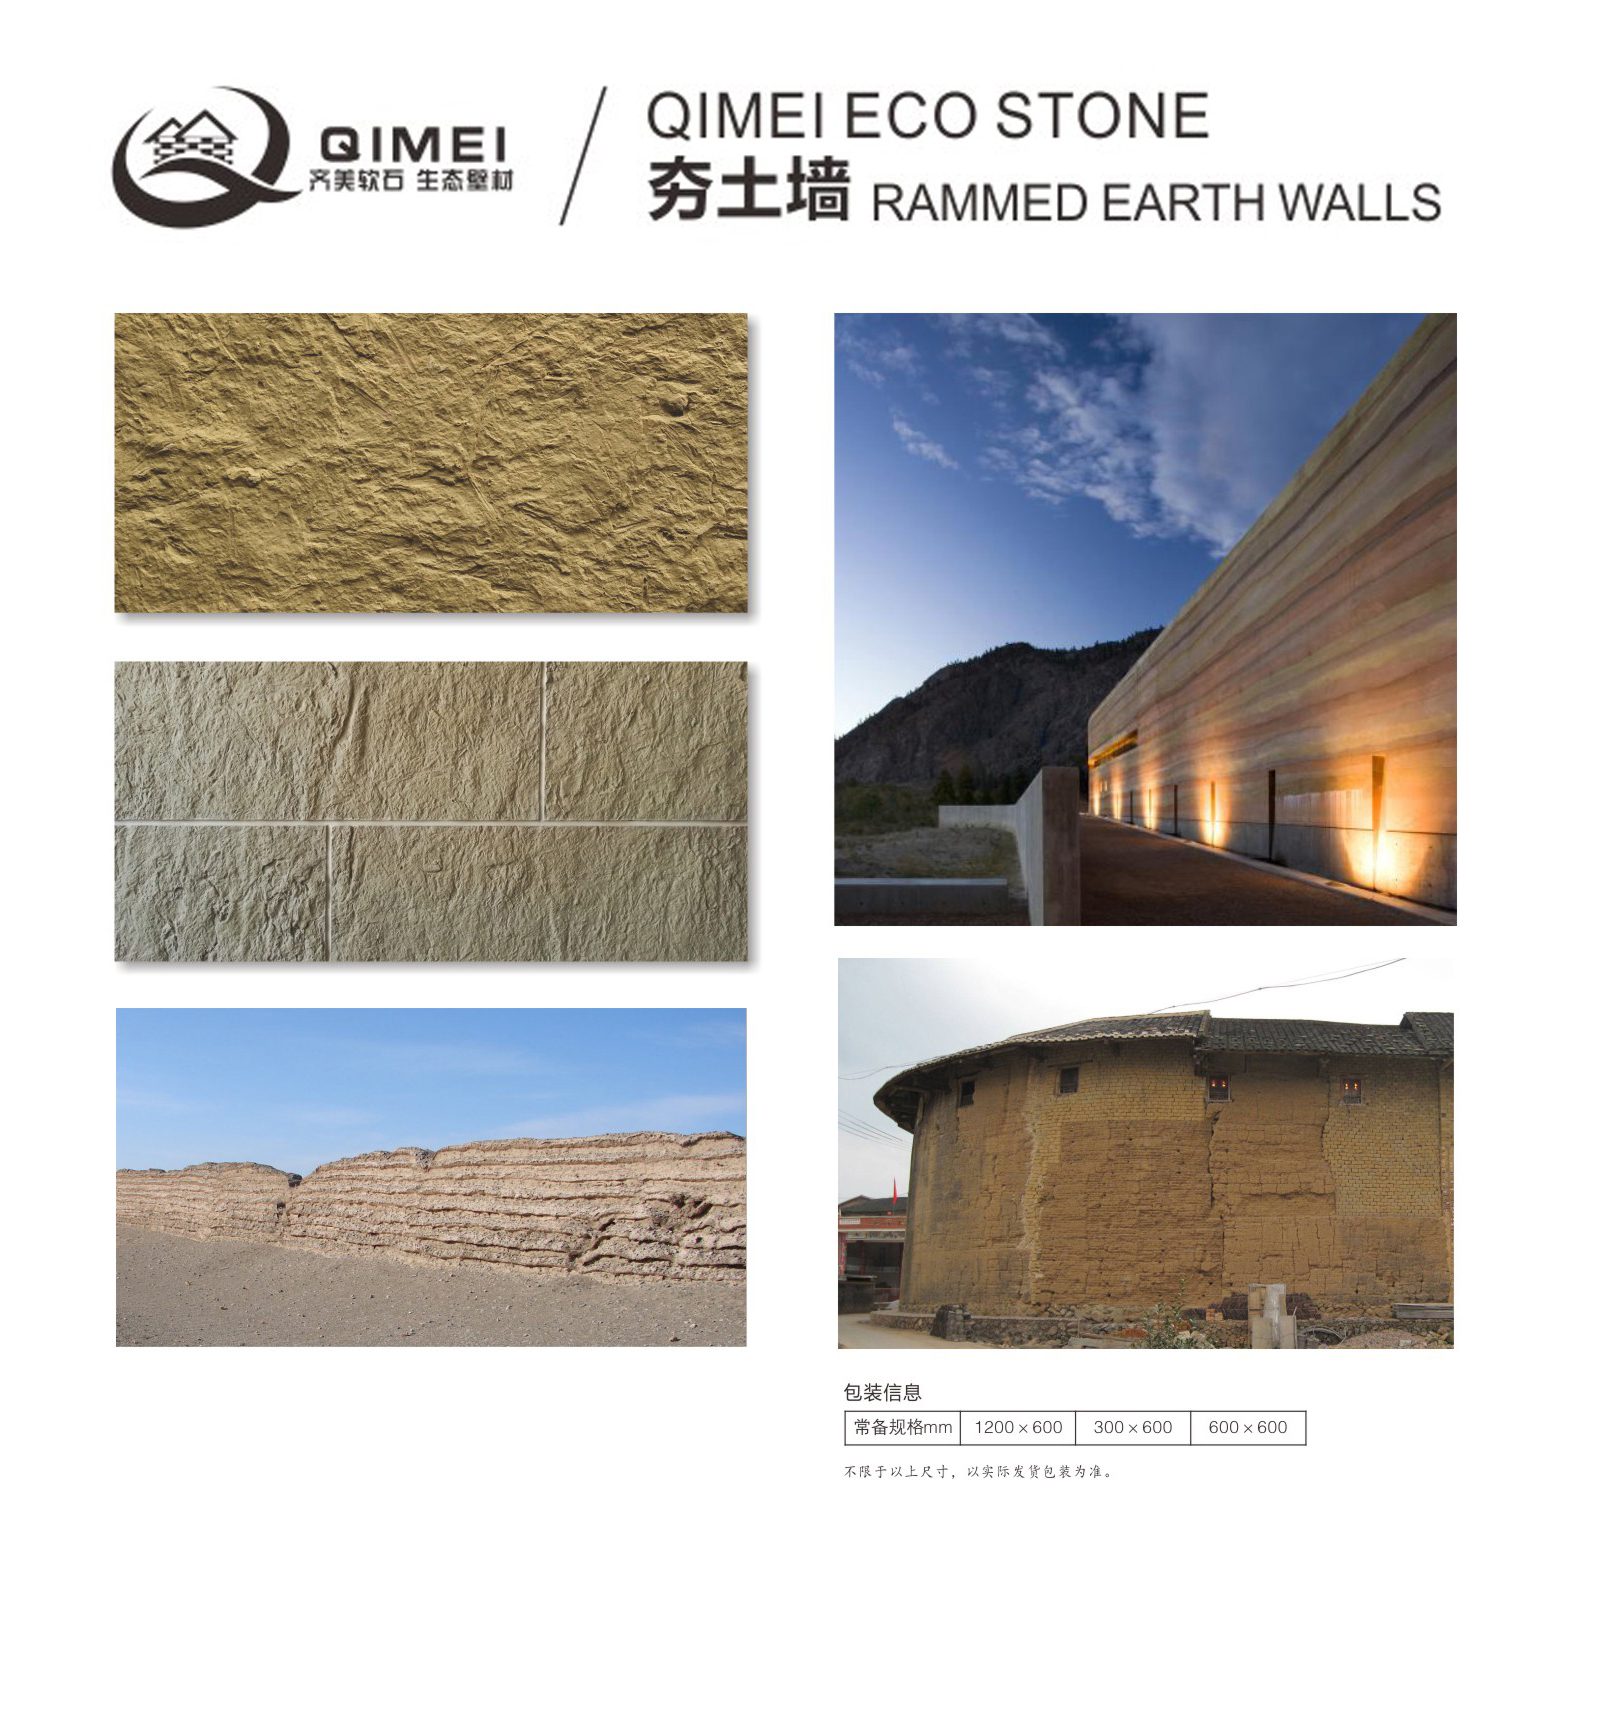 rammed earth stone customized and personalized tile/ceremics